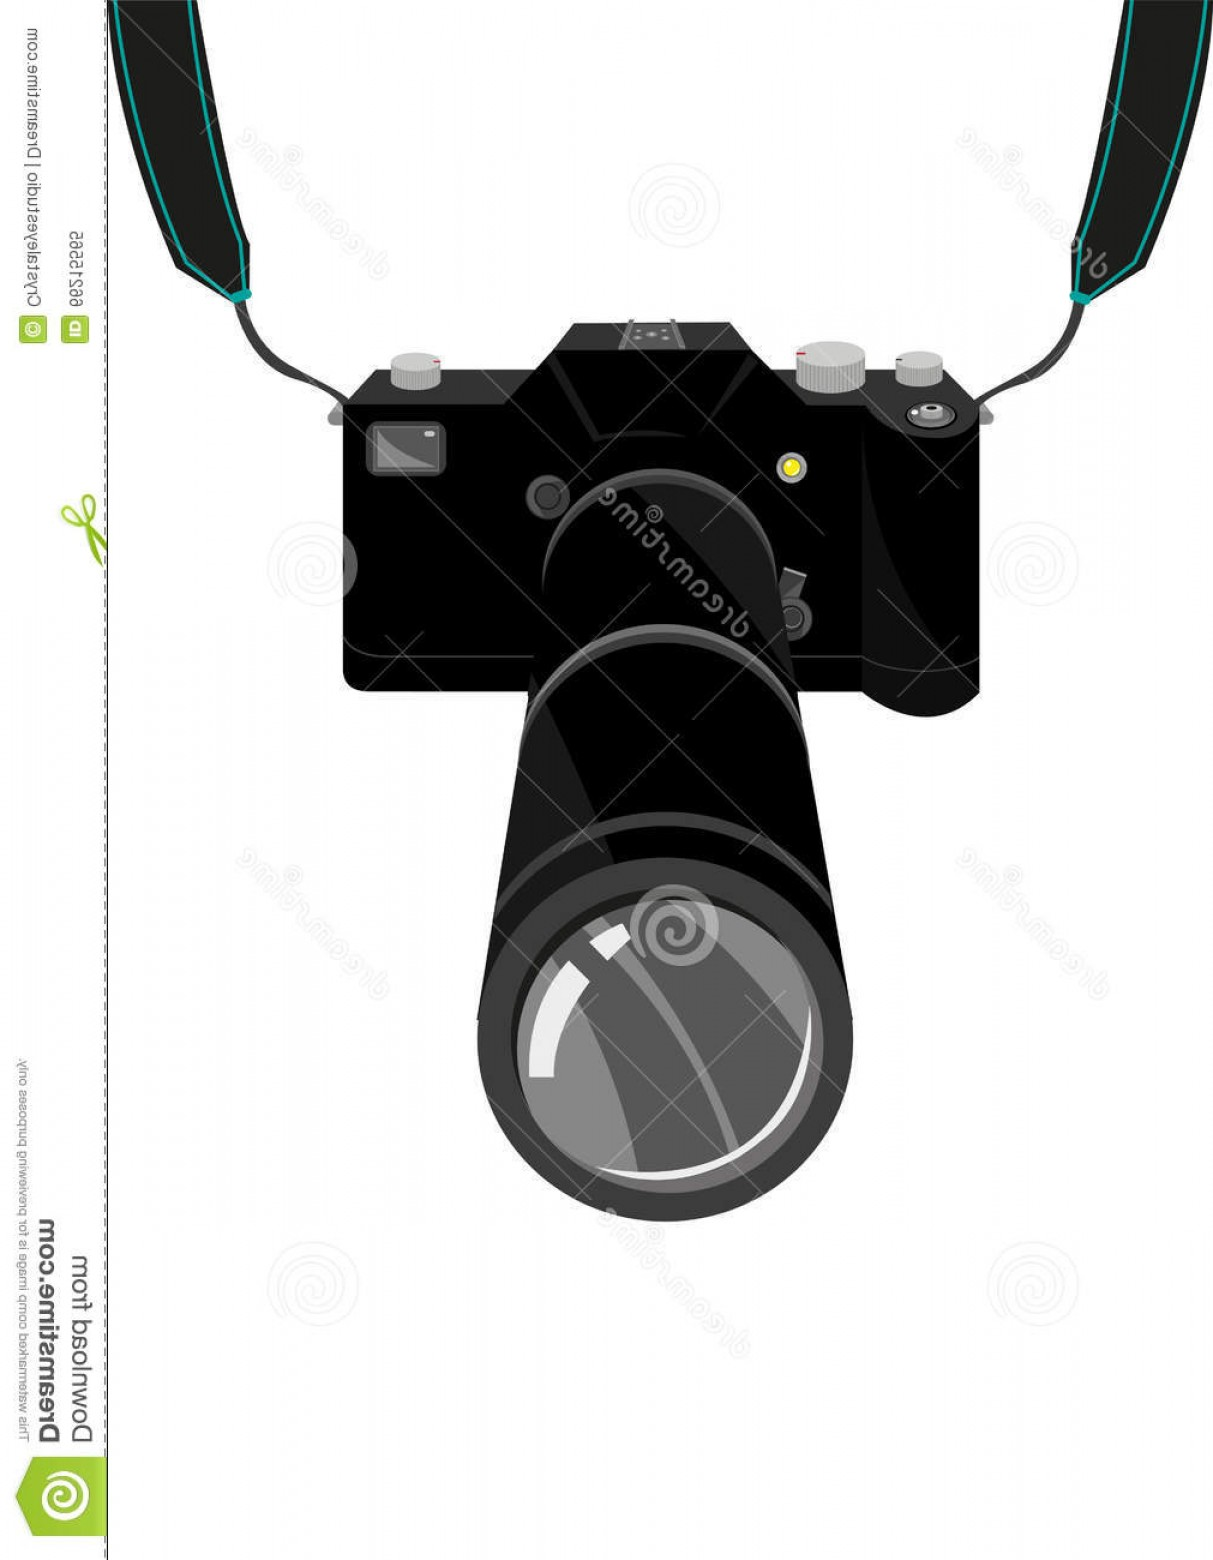 SLR Camera Vector: Stock Illustration Expensive Slr Film Digital Single Lens Reflex Dslr Camera Strap Zoom Lens Editable Clip Art Illustration Black Image